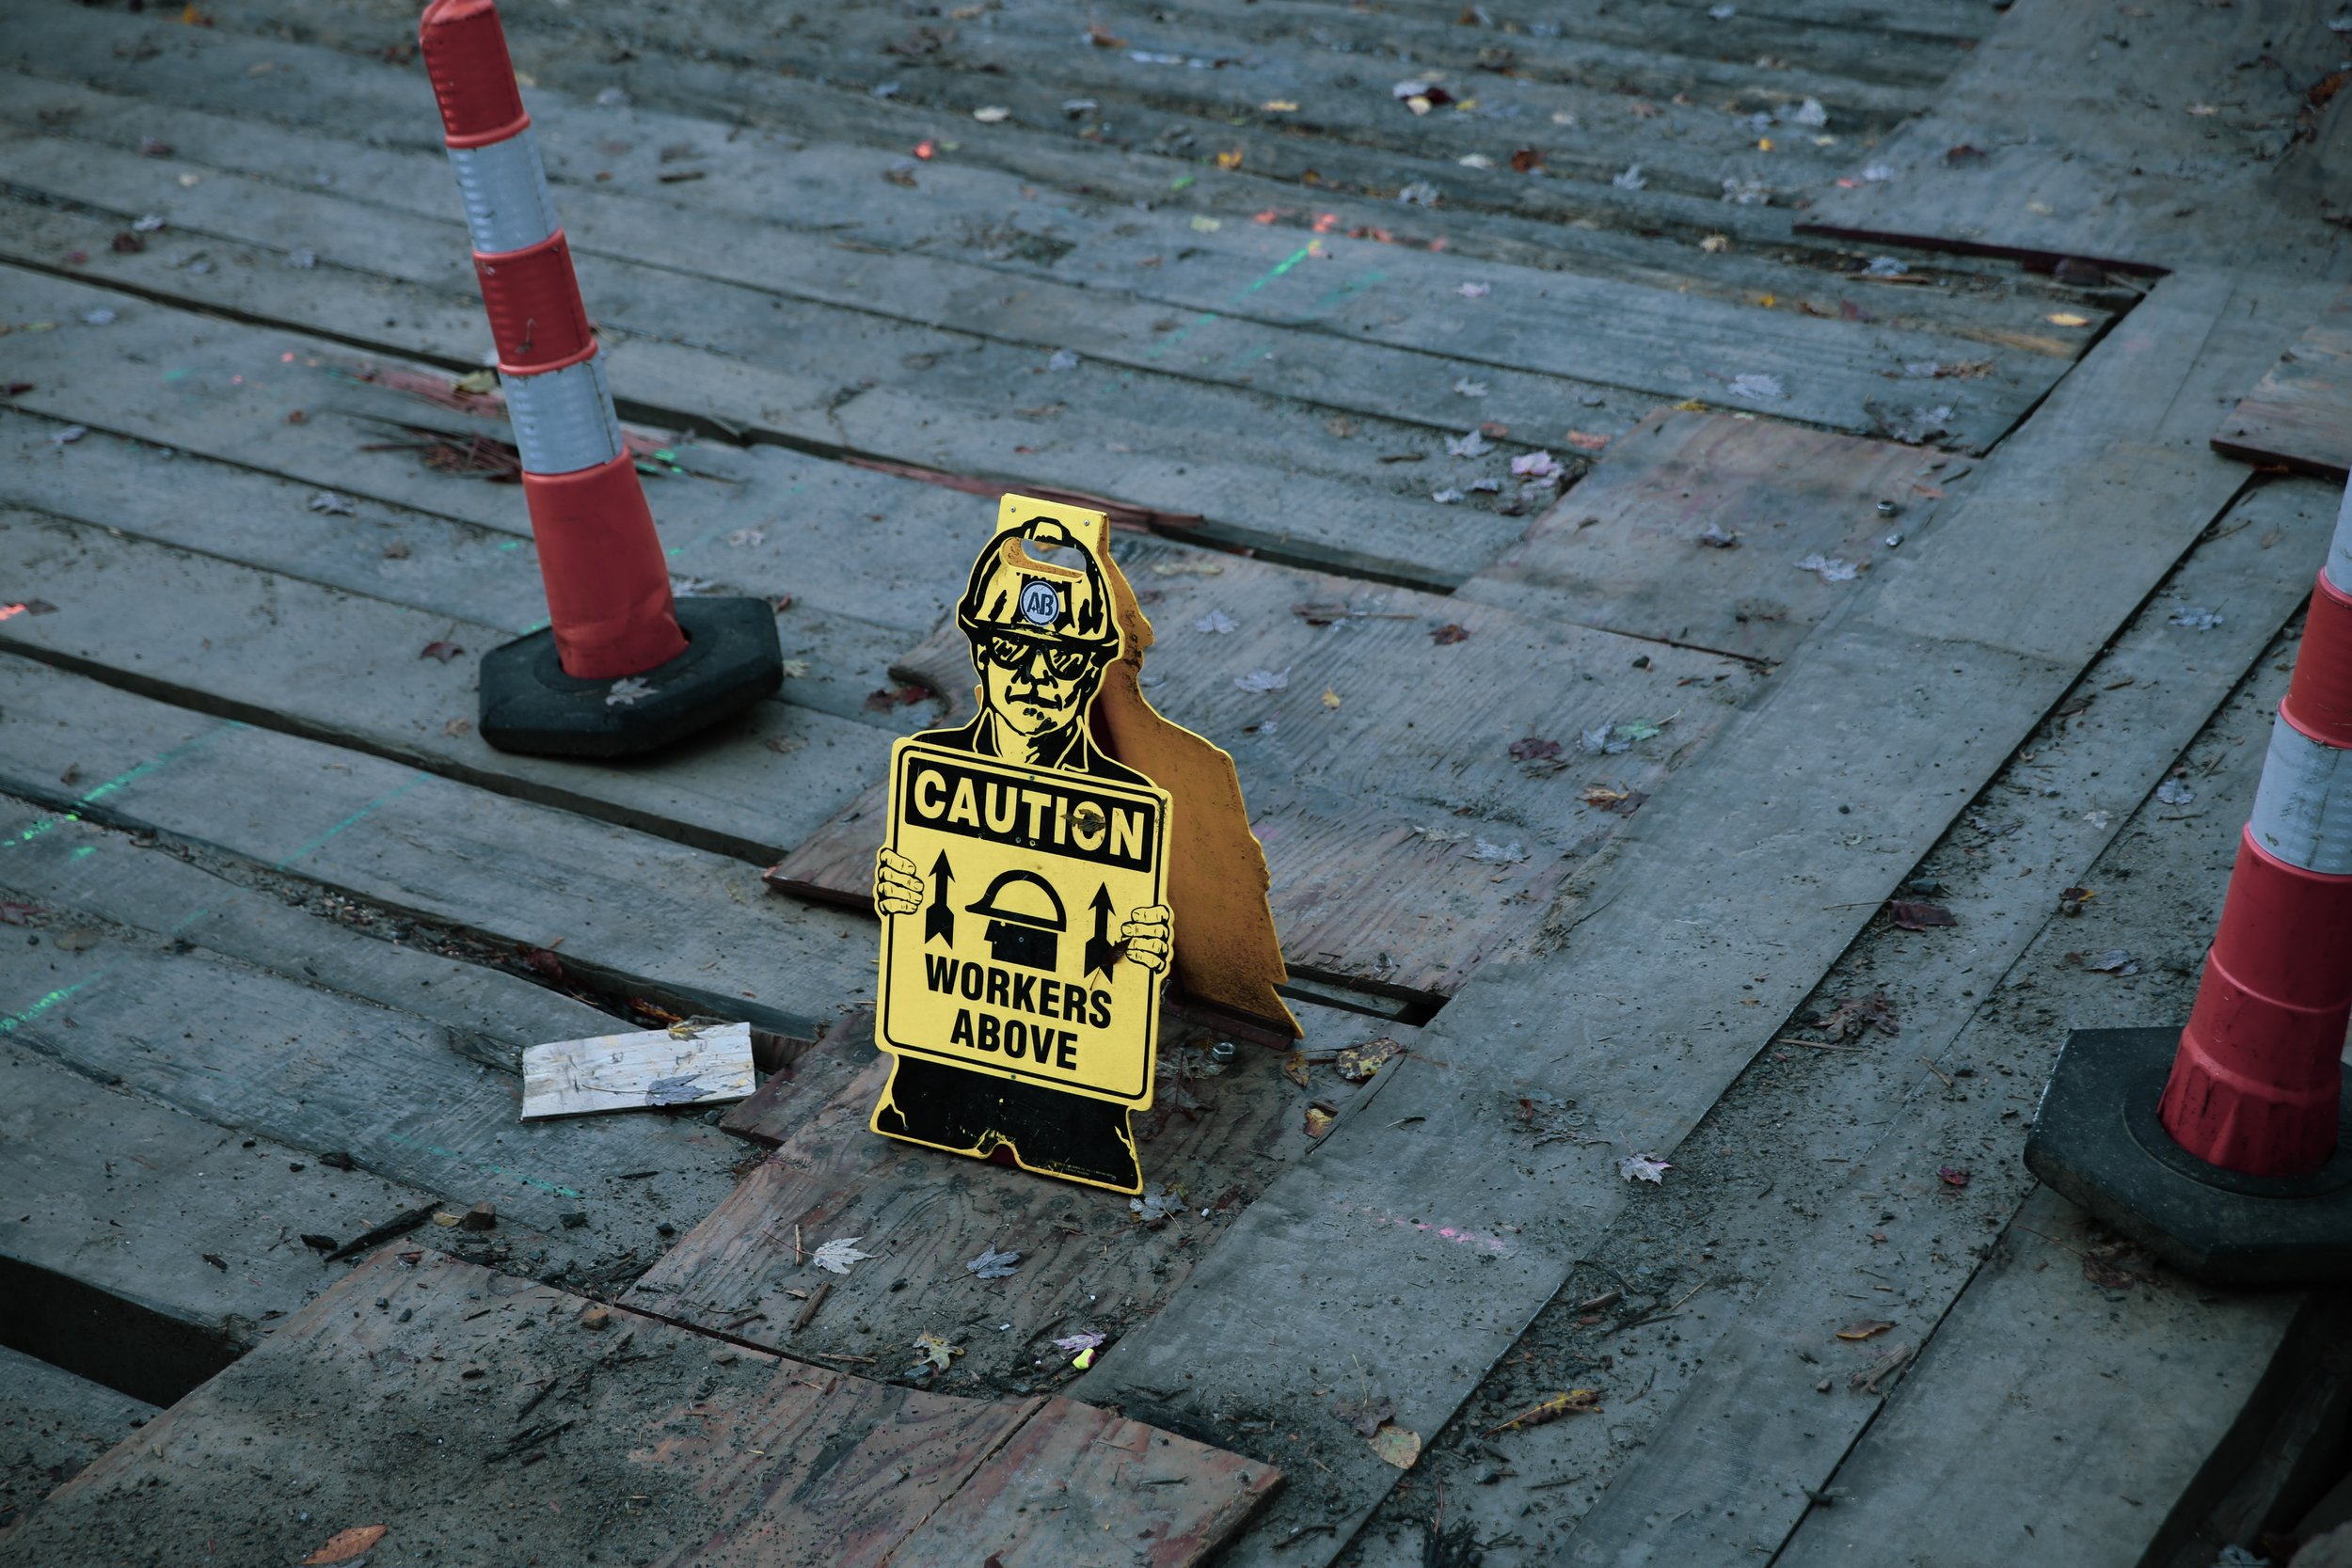 Caution sign construction workers